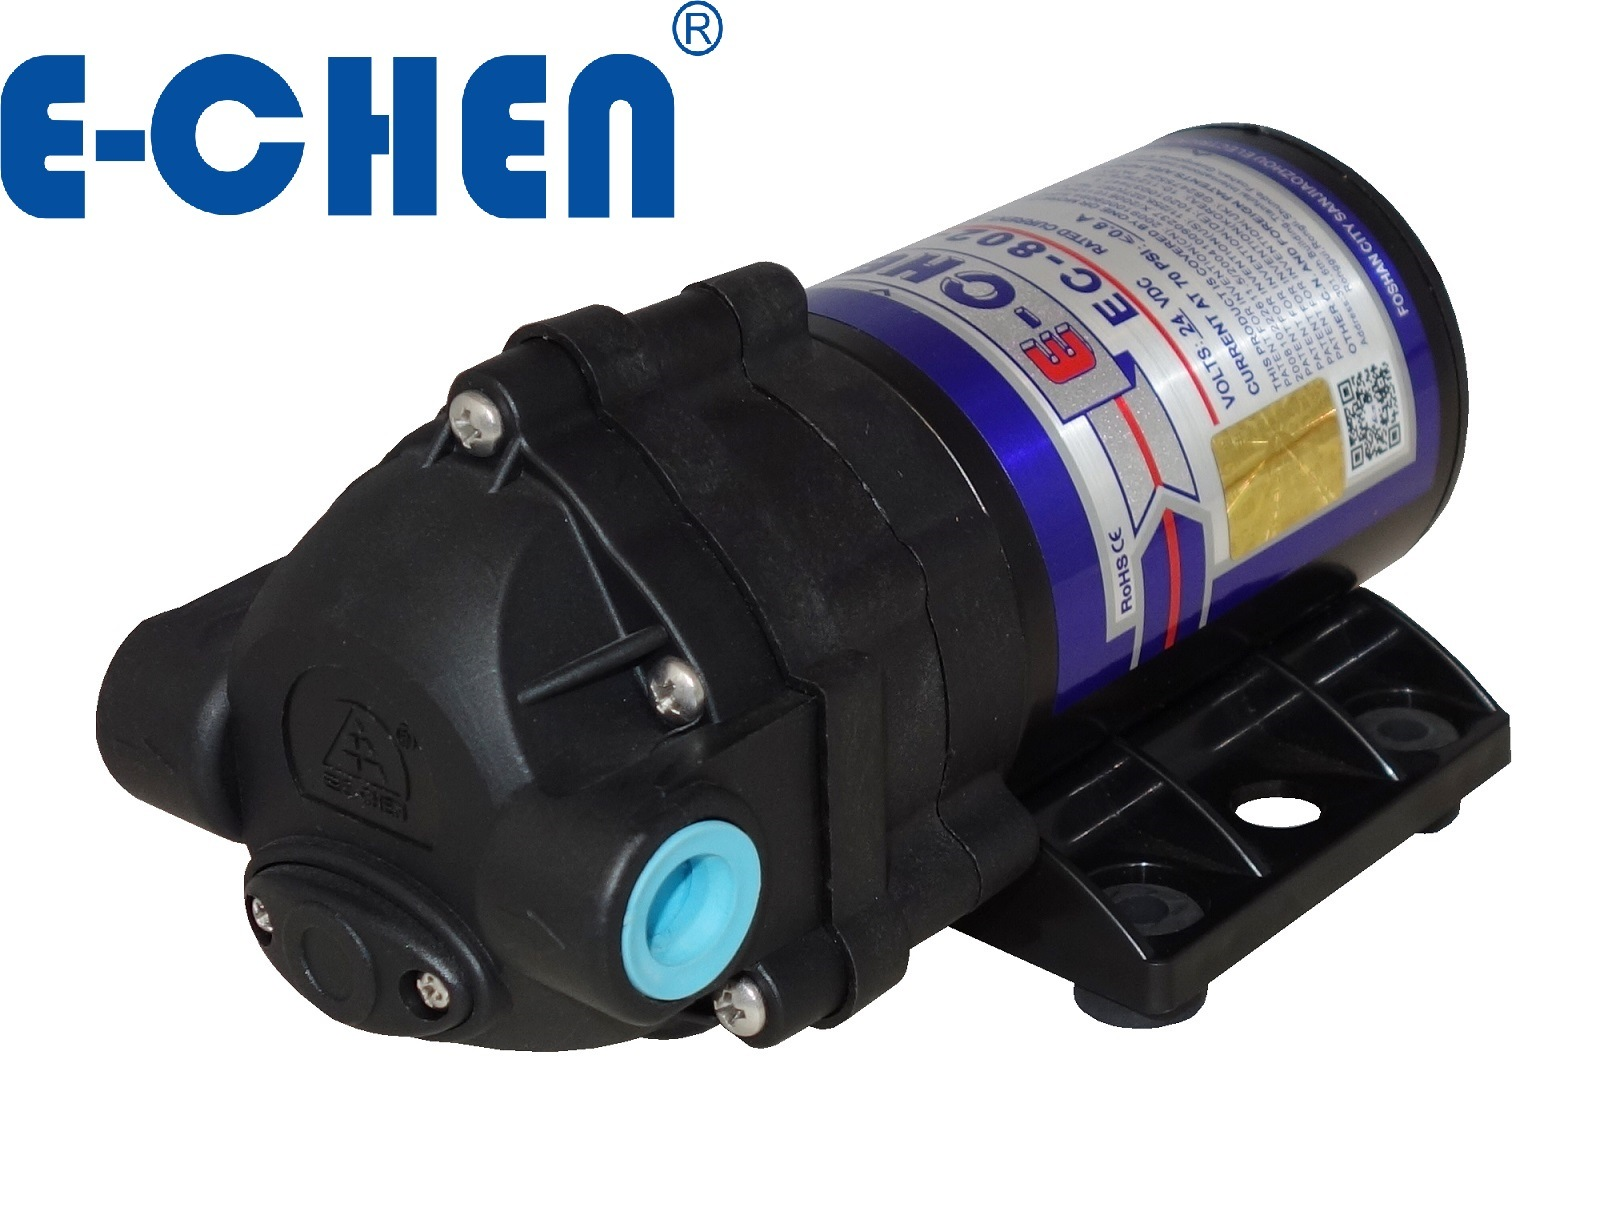 E-Chen 802 Series 75gpd Compact Diaphragm RO Booster Water Pump